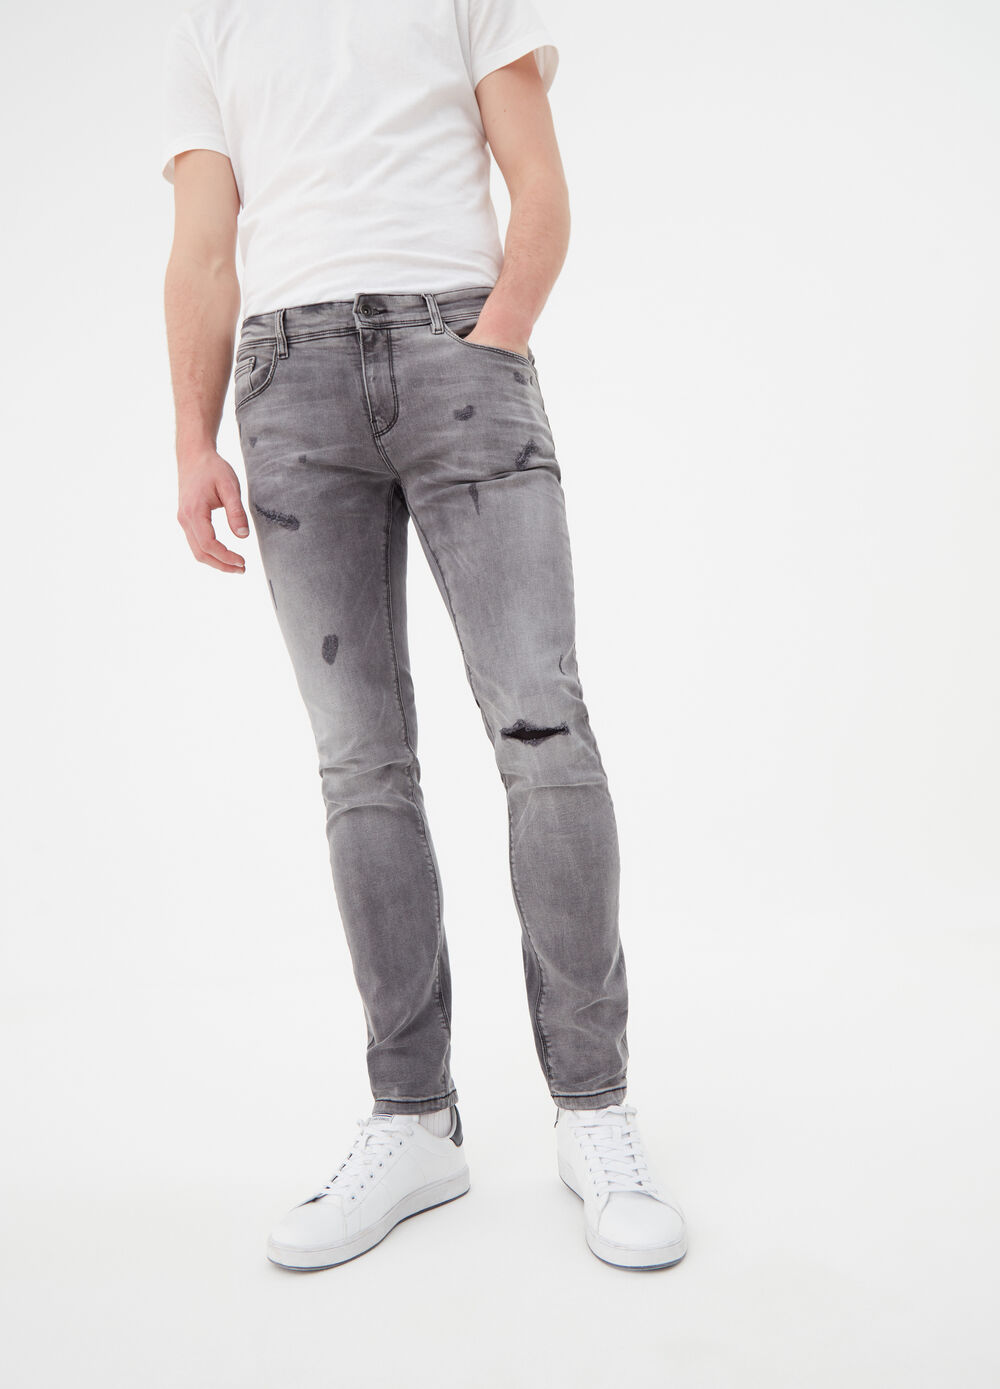 Washed-effect stretch jeans with rips